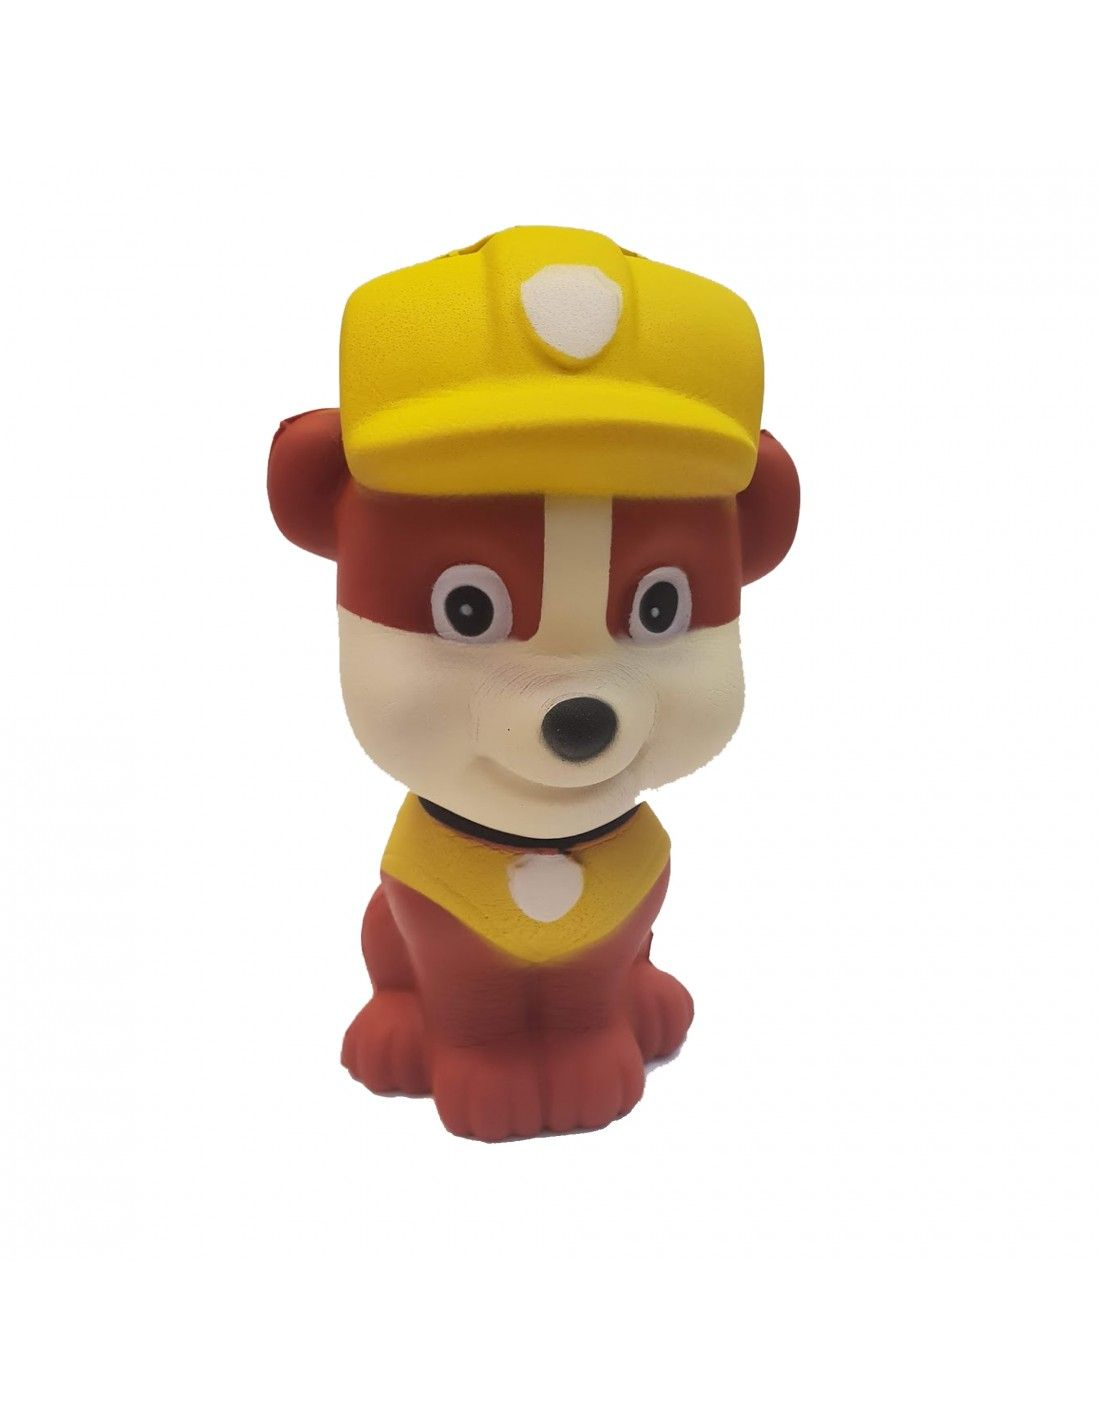 Paw Patrol - Rubble Squishy Squishies